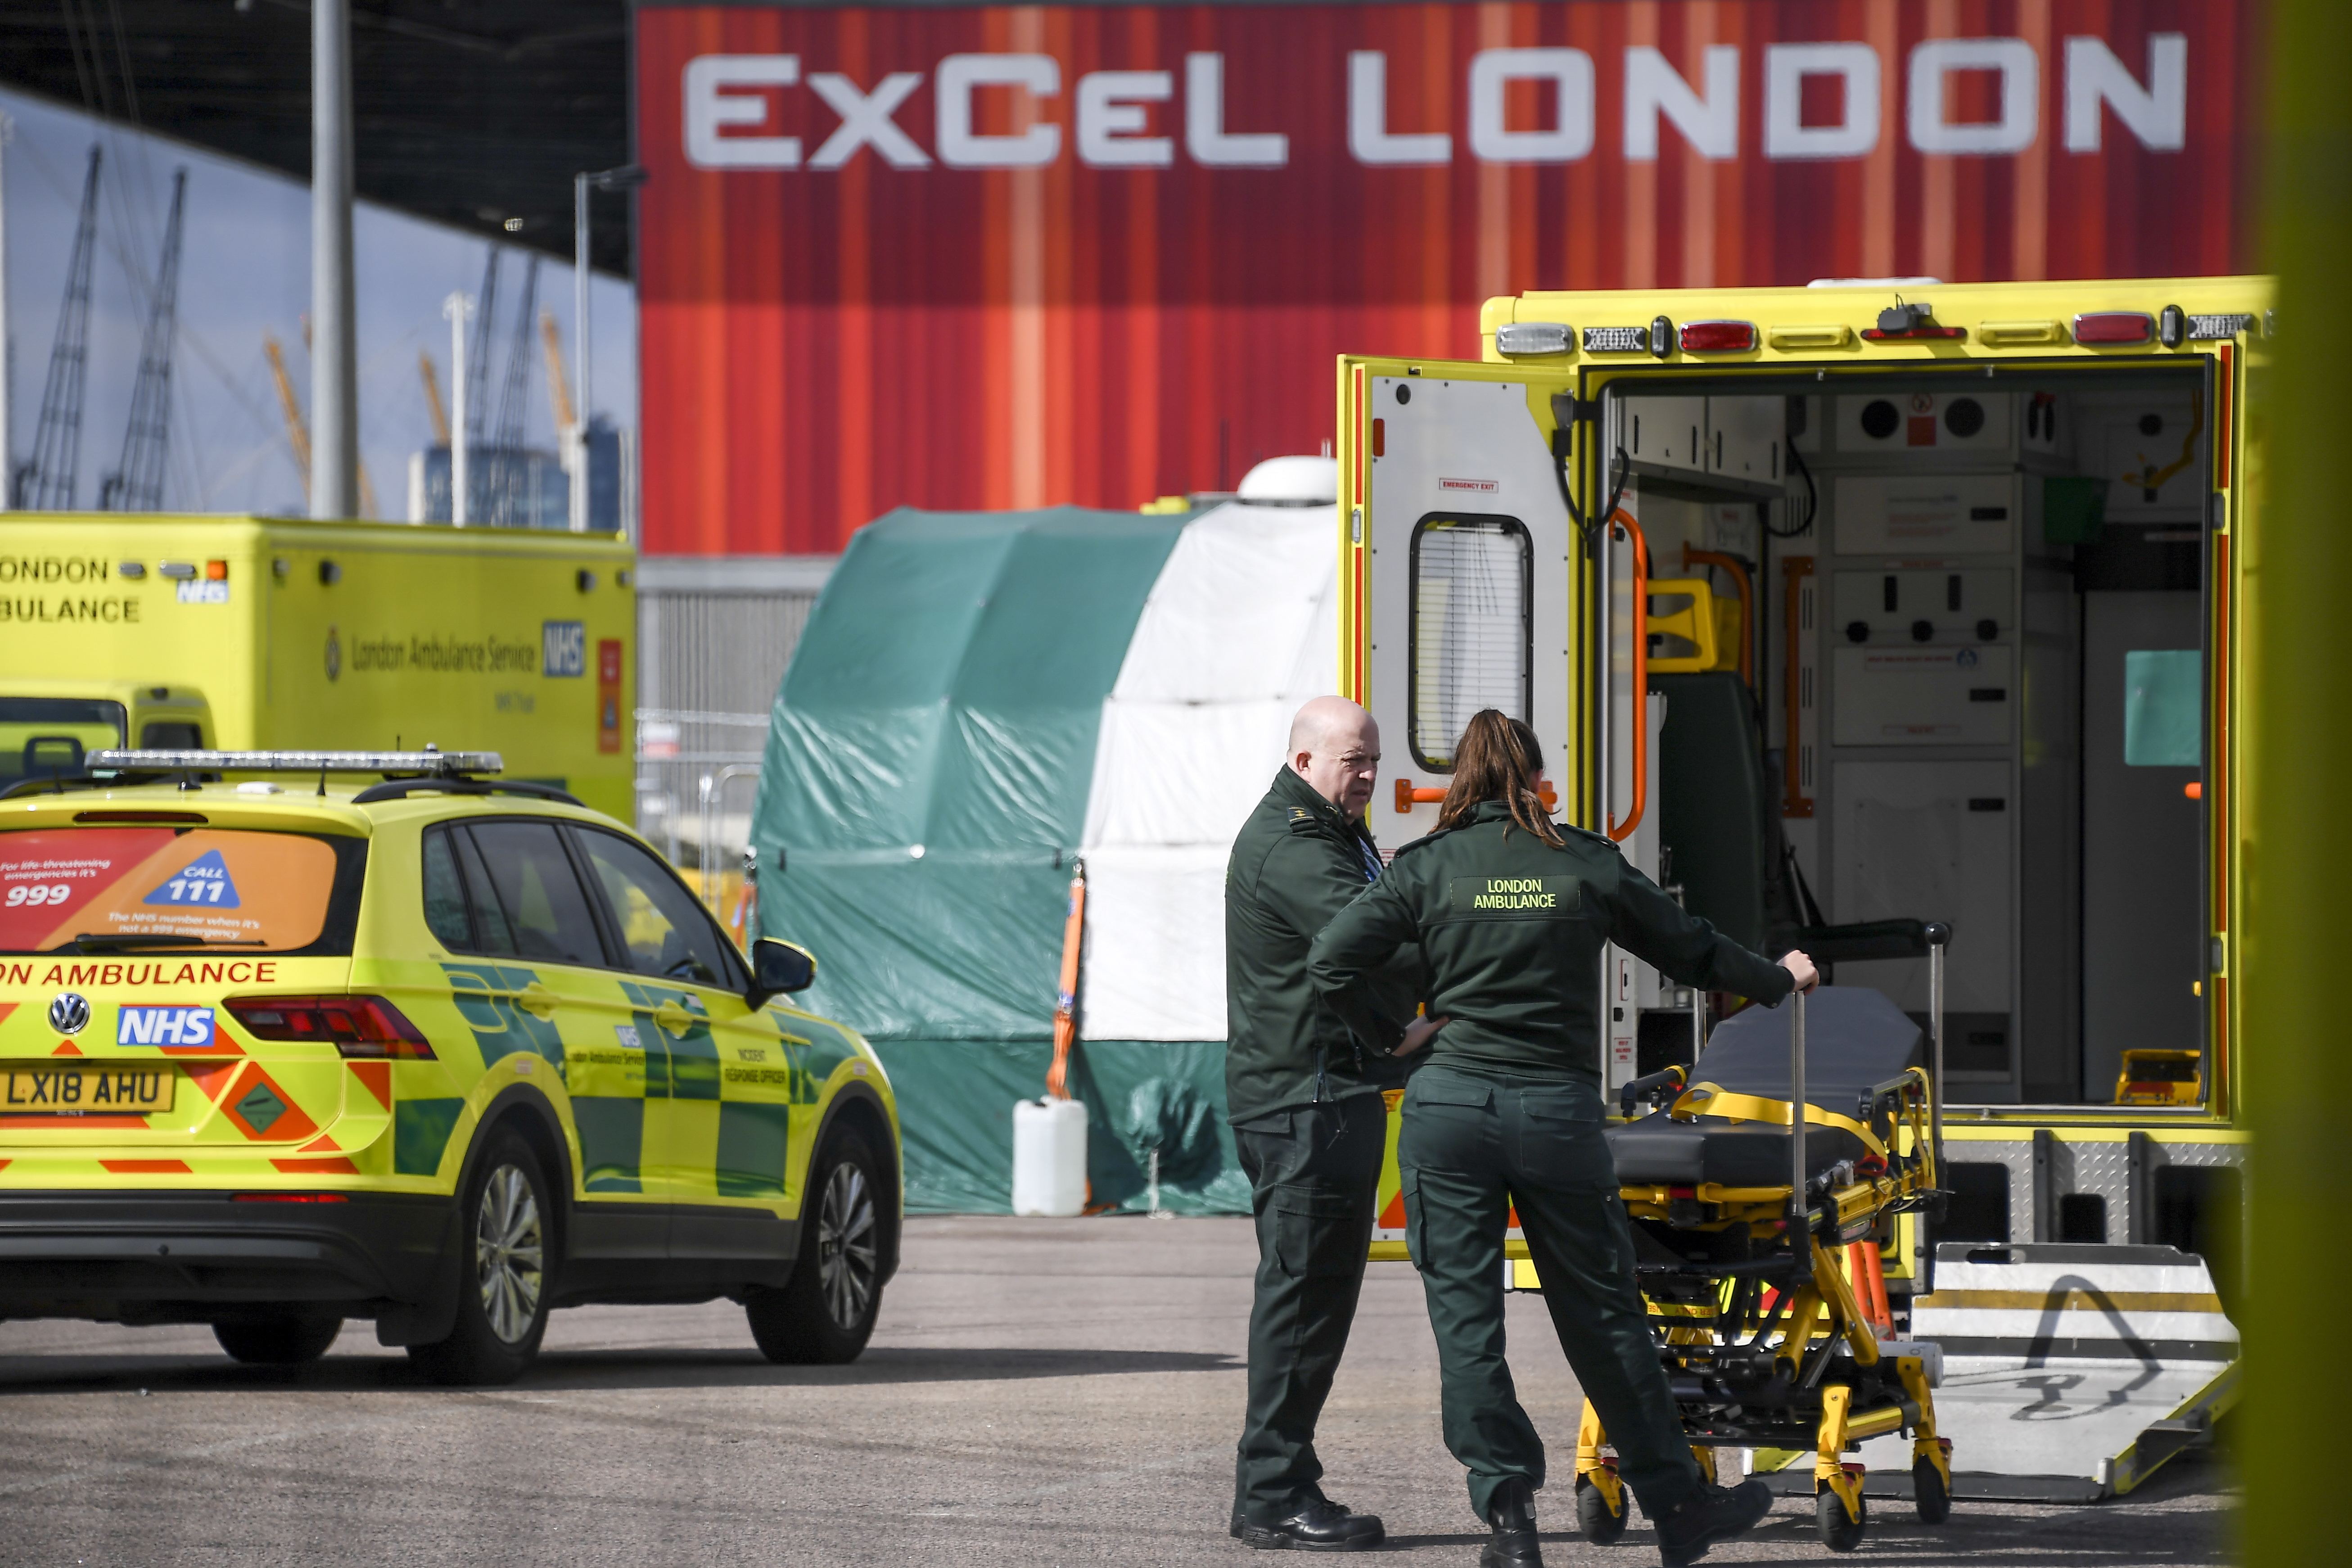 Ambulance staff at the ExCel Center in London, Thursday, April 2, 2020, that is being turned into a 4000 bed temporary hospital know as NHS Nightingale to help deal with some of the coronavirus outbreak victims in London. The new coronavirus causes mild or moderate symptoms for most people, but for some, especially older adults and people with existing health problems, it can cause more severe illness or death. (AP Photo/Alberto Pezzali)